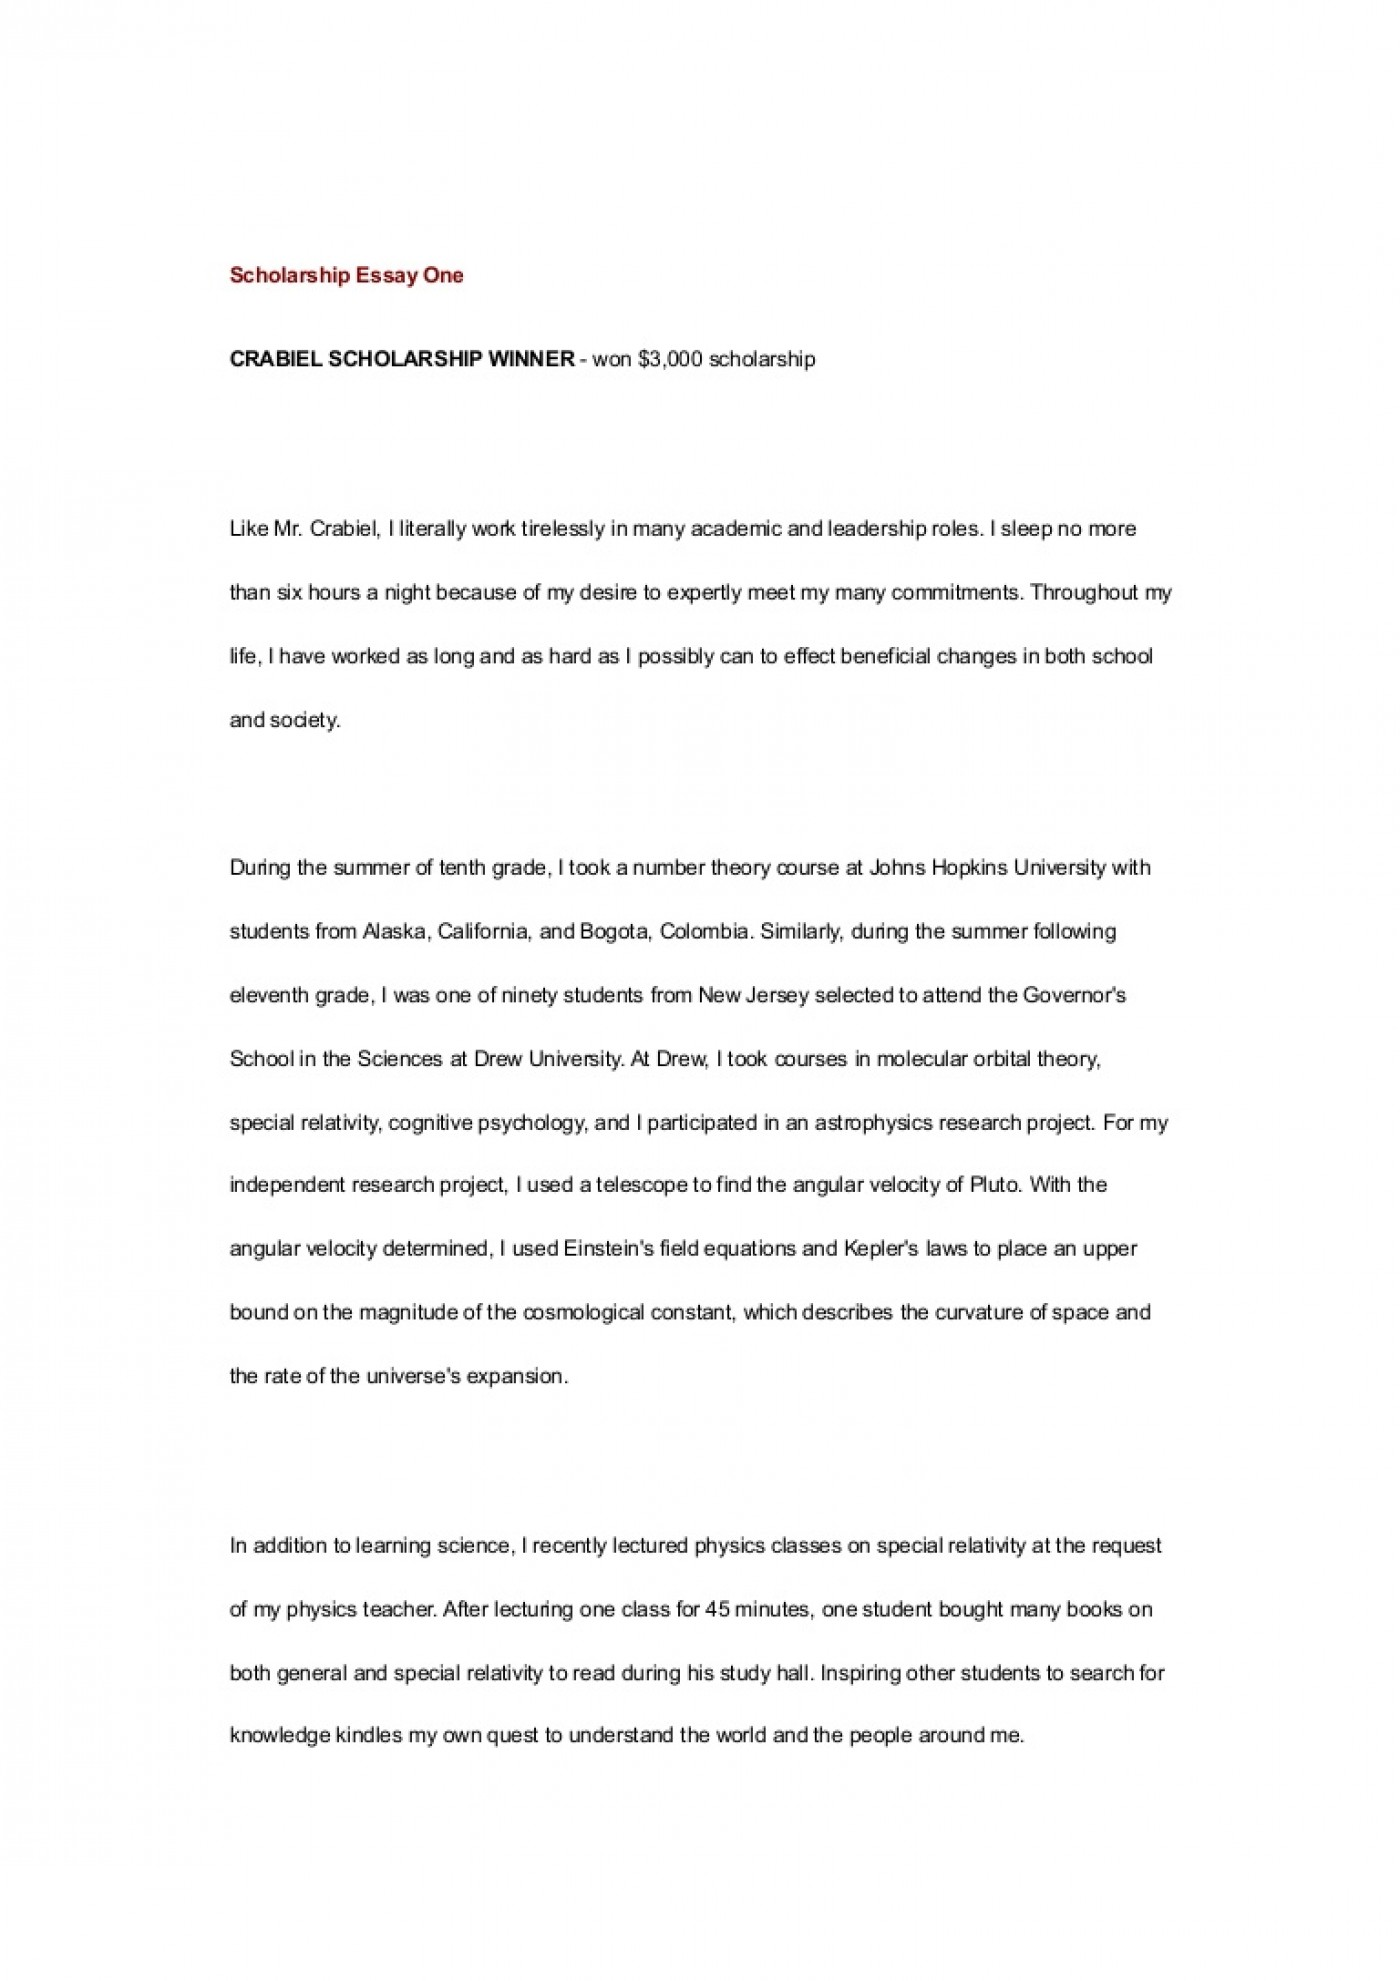 005 Scholarship Essay Examples Example Scholarshipessayone Phpapp01 Thumbnail Impressive Financial Need Pdf About Yourself 1400